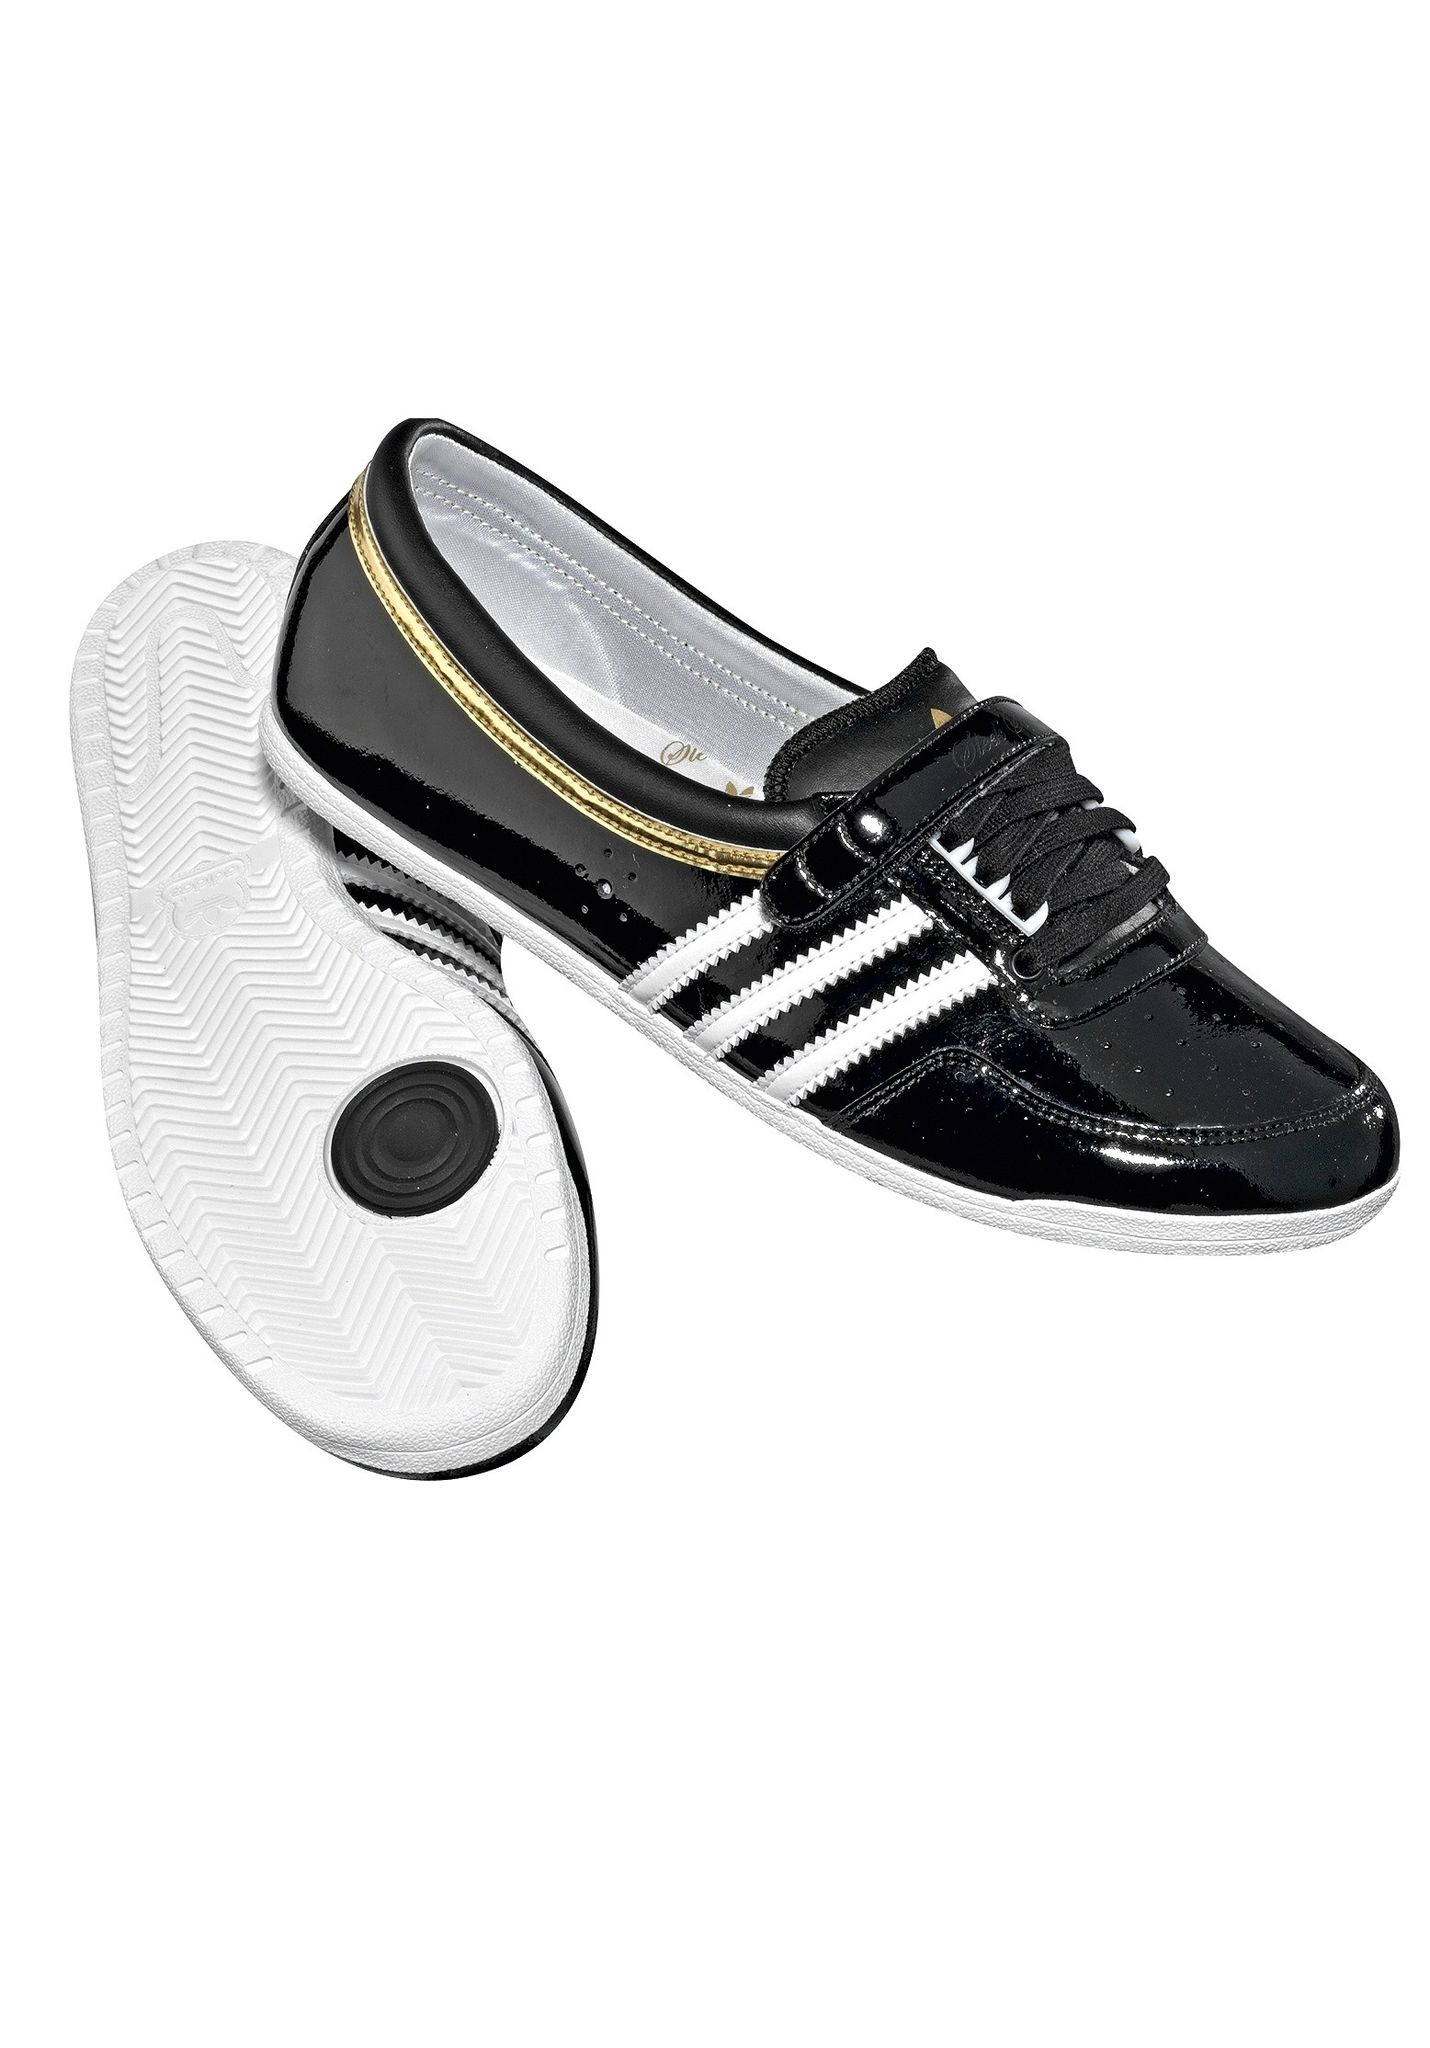 ADIDAS ORIGINALS Concord Round - Sneakers for Women - White - Planet Sports a823ab4f46